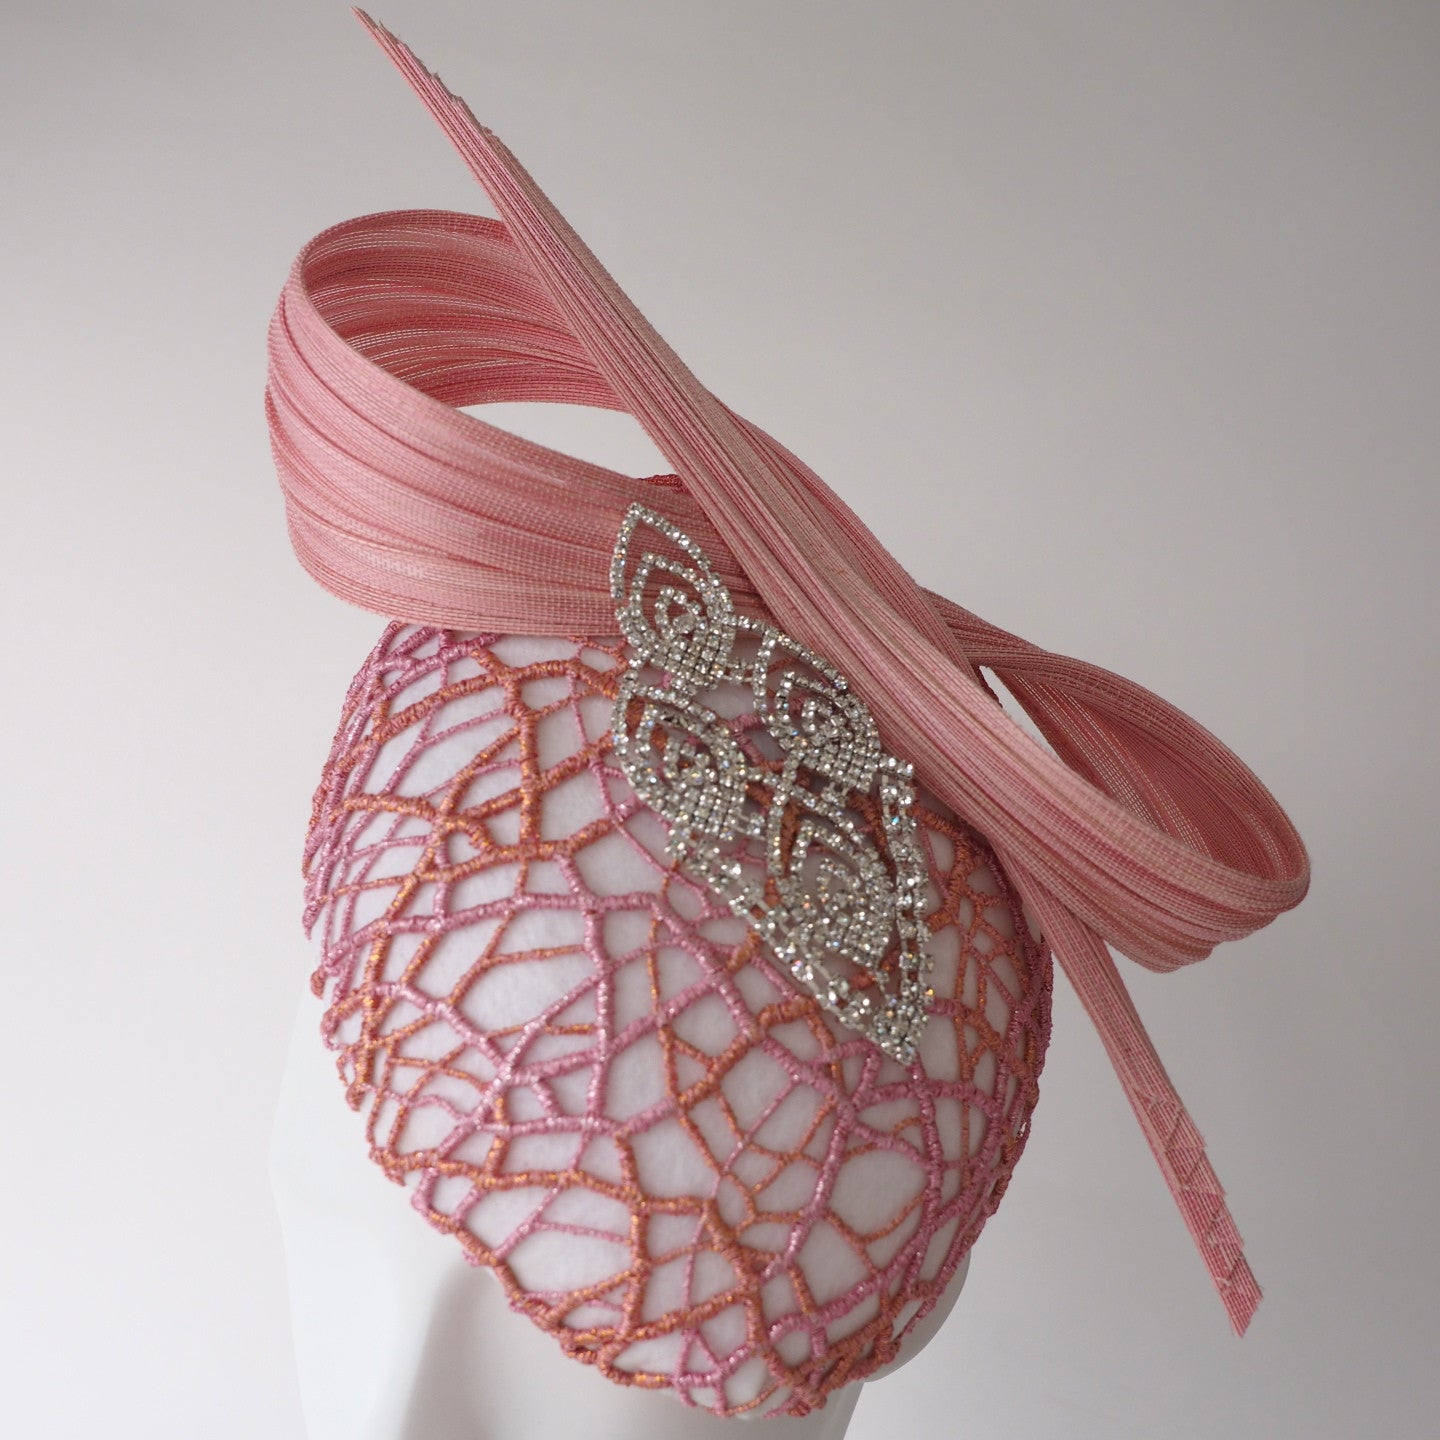 Elegant Roots - Classy Beautiful Hat for special occasion - NOELEEN MILLINERY HONG KONG